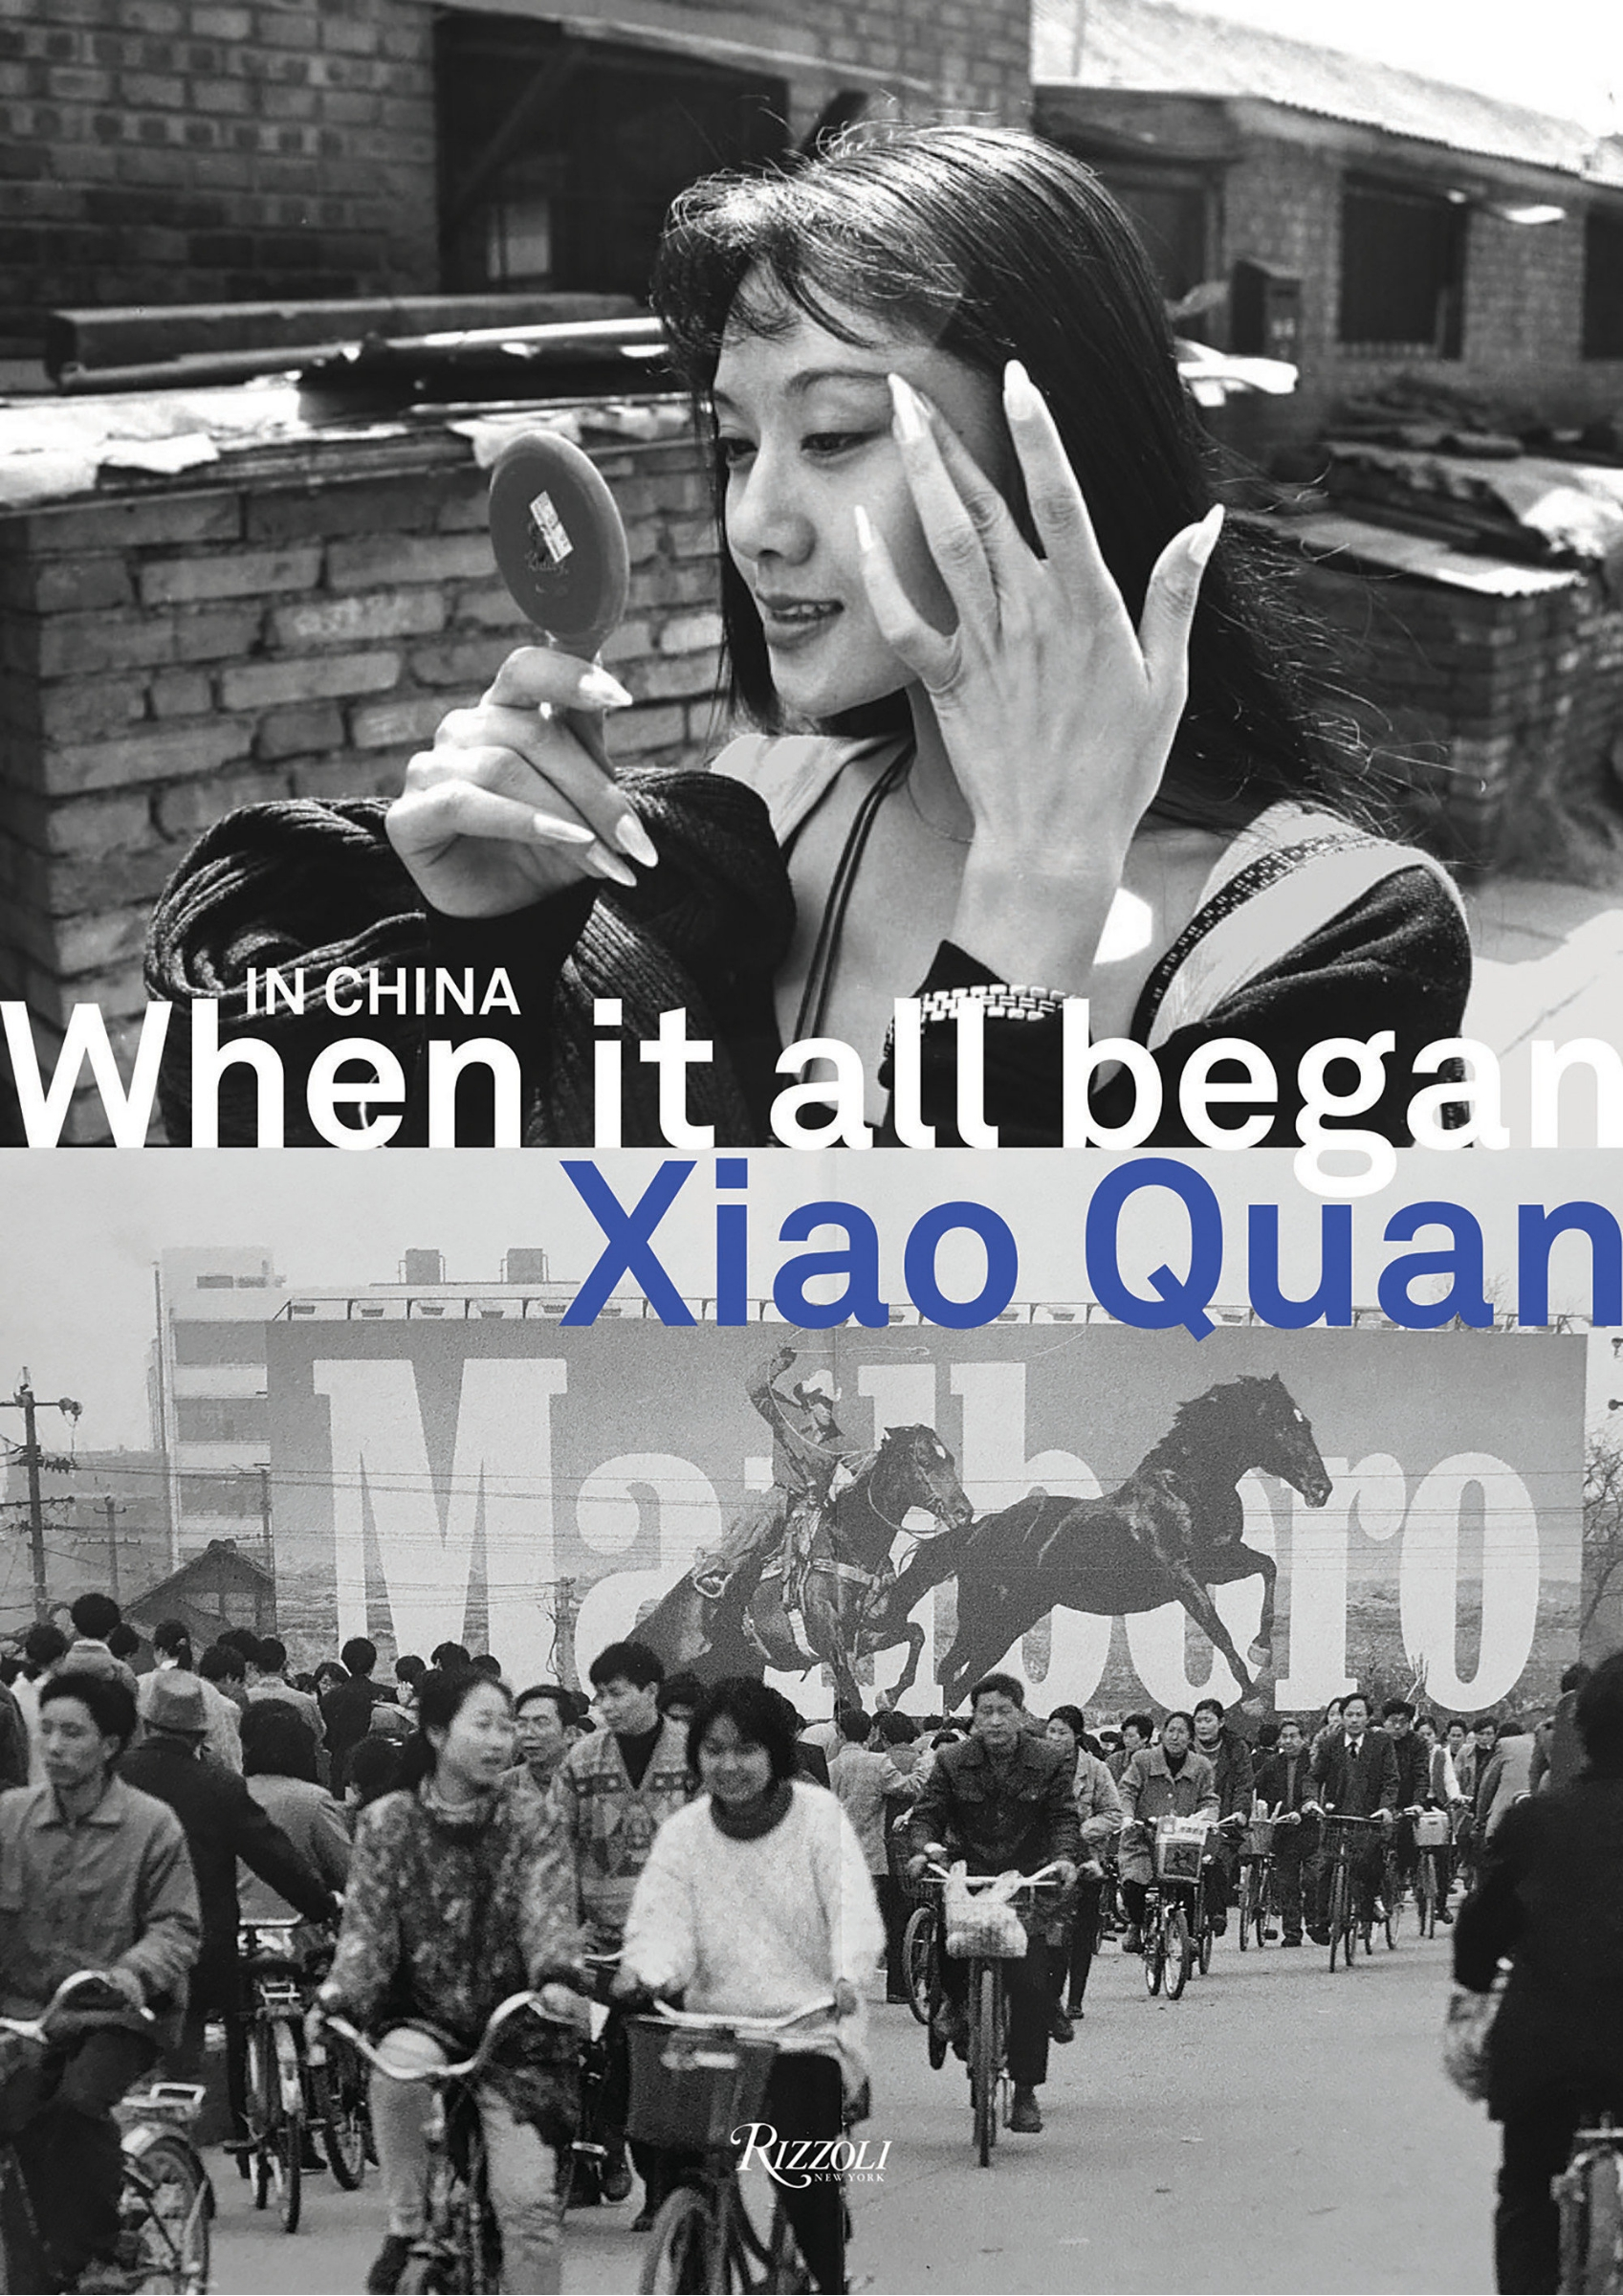 In China When It All Began by Xiao Quan